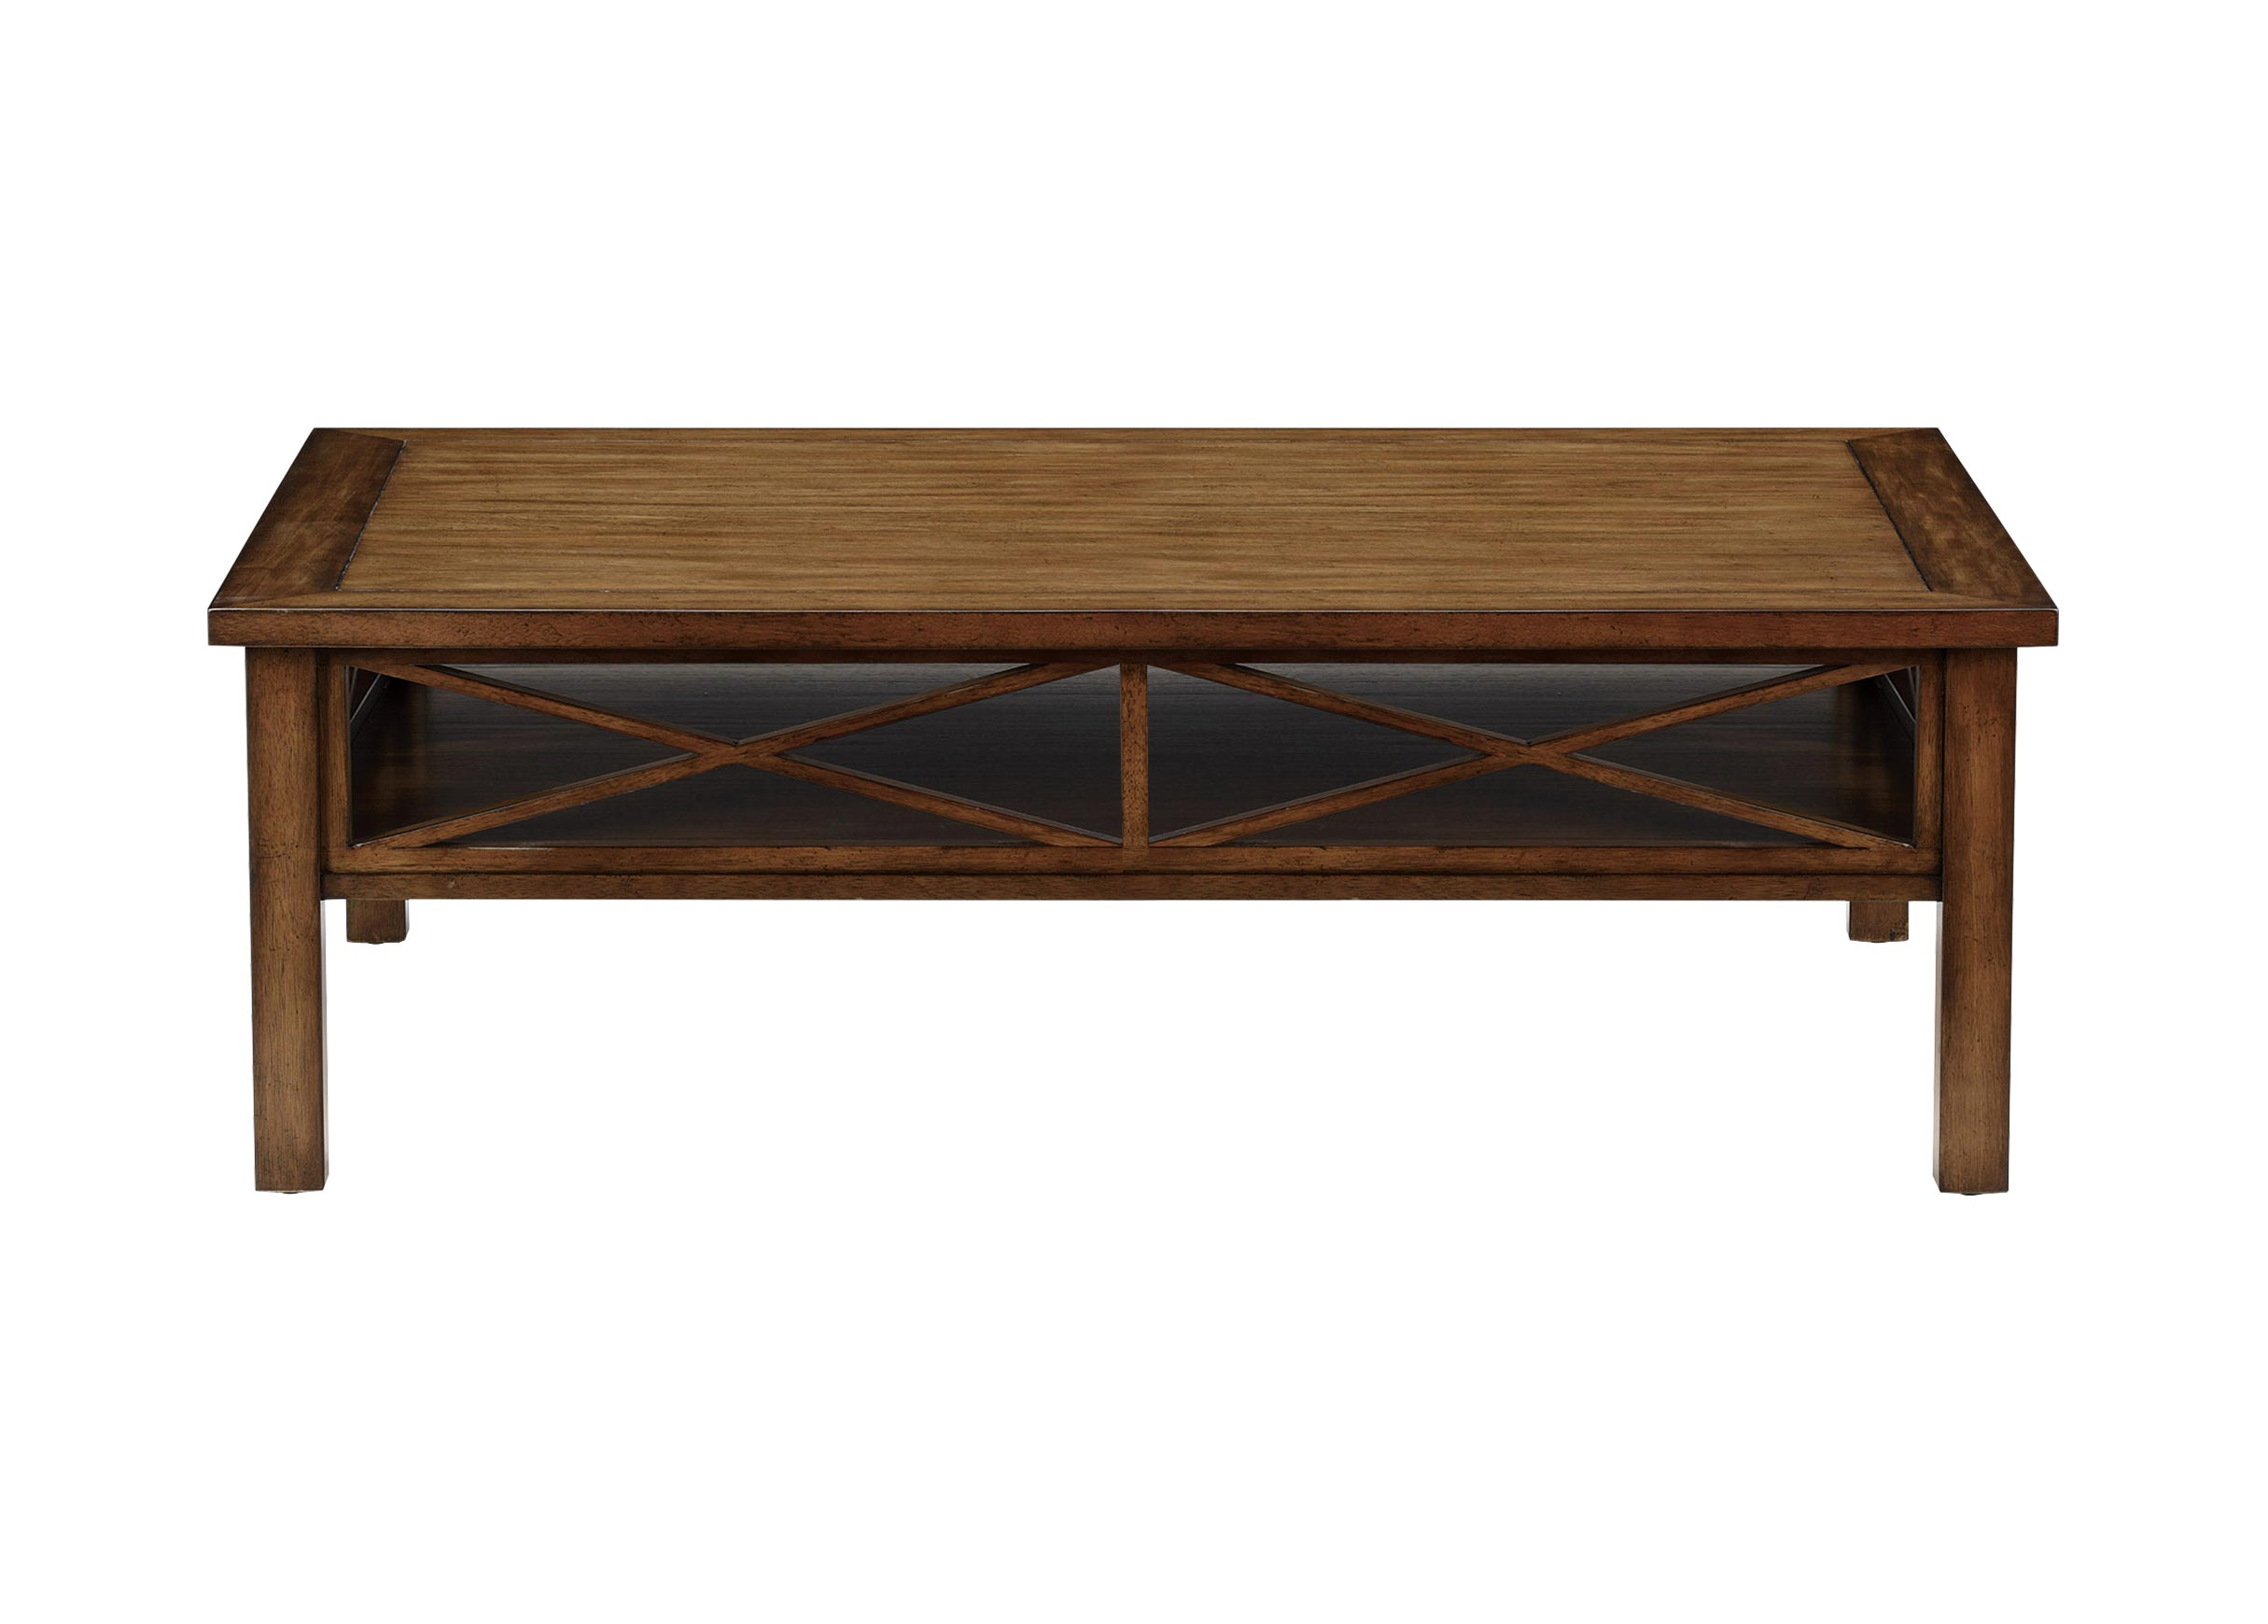 dexter coffee table tables ethan allen front copper end broyhill premier collection bedroom oak furniture usa rustic industrial side home interiors chunky ashley brown metal